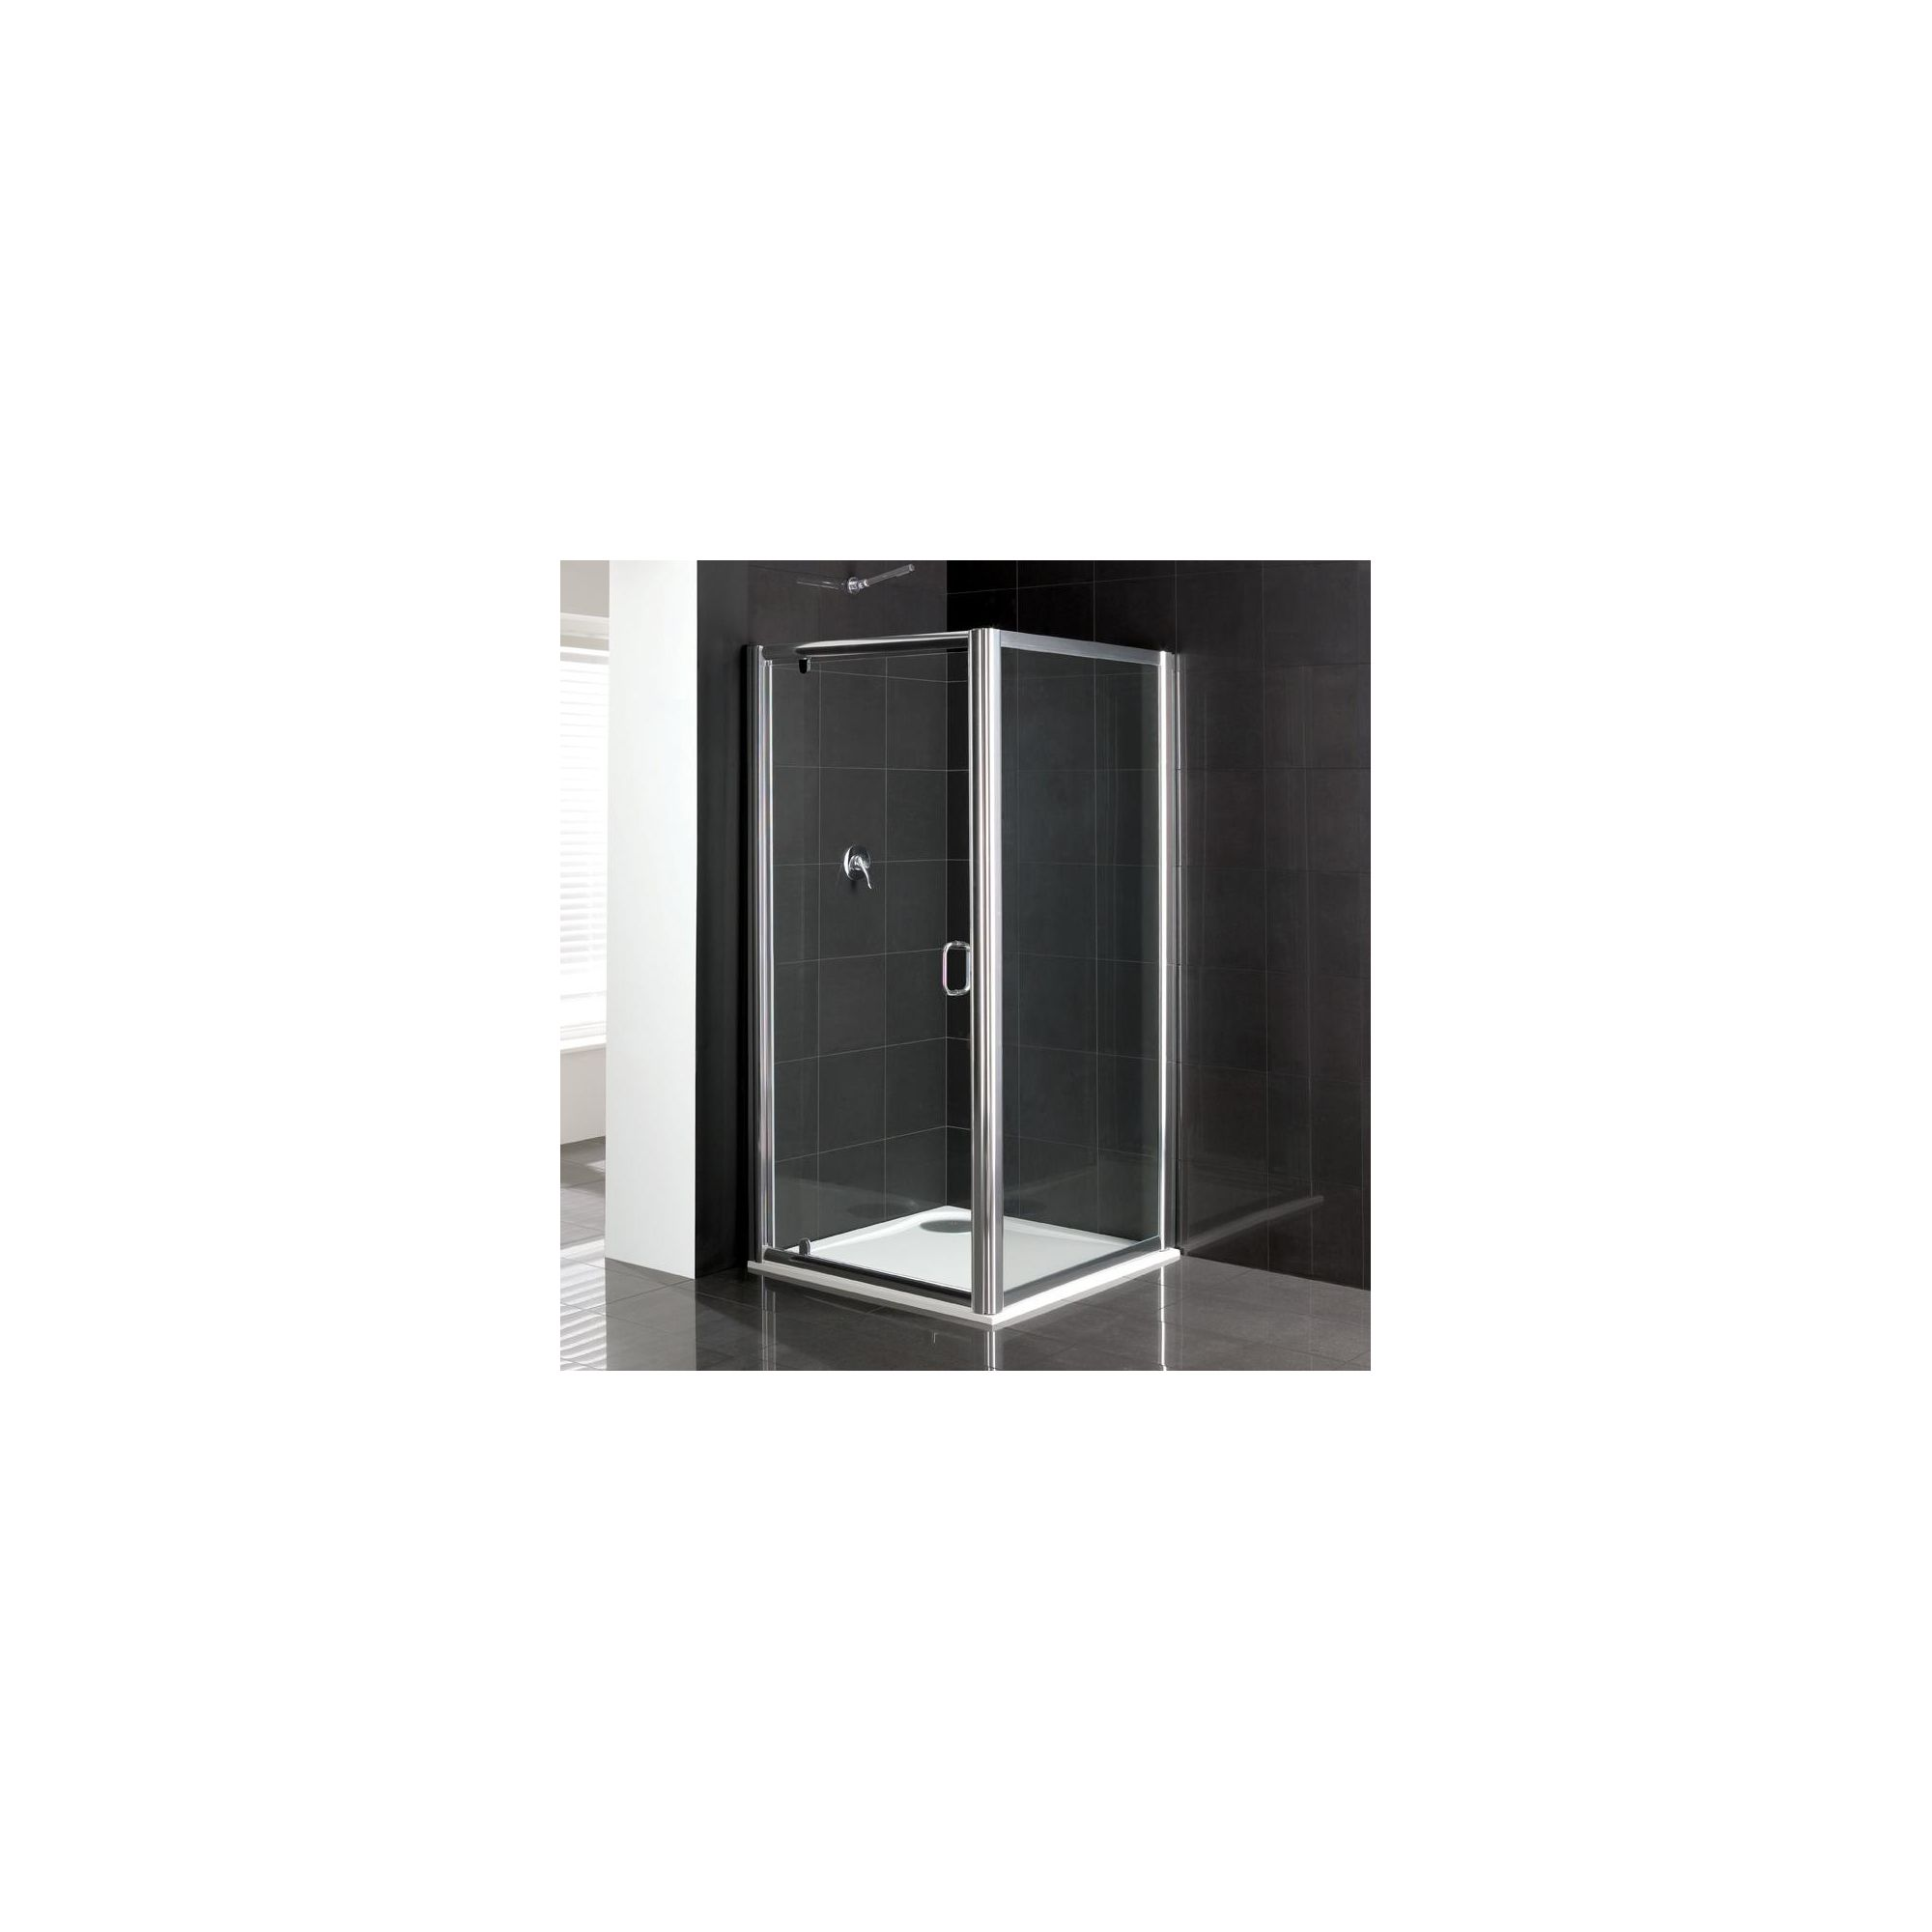 Duchy Elite Silver Pivot Door Shower Enclosure, 1000mm x 900mm, Standard Tray, 6mm Glass at Tesco Direct